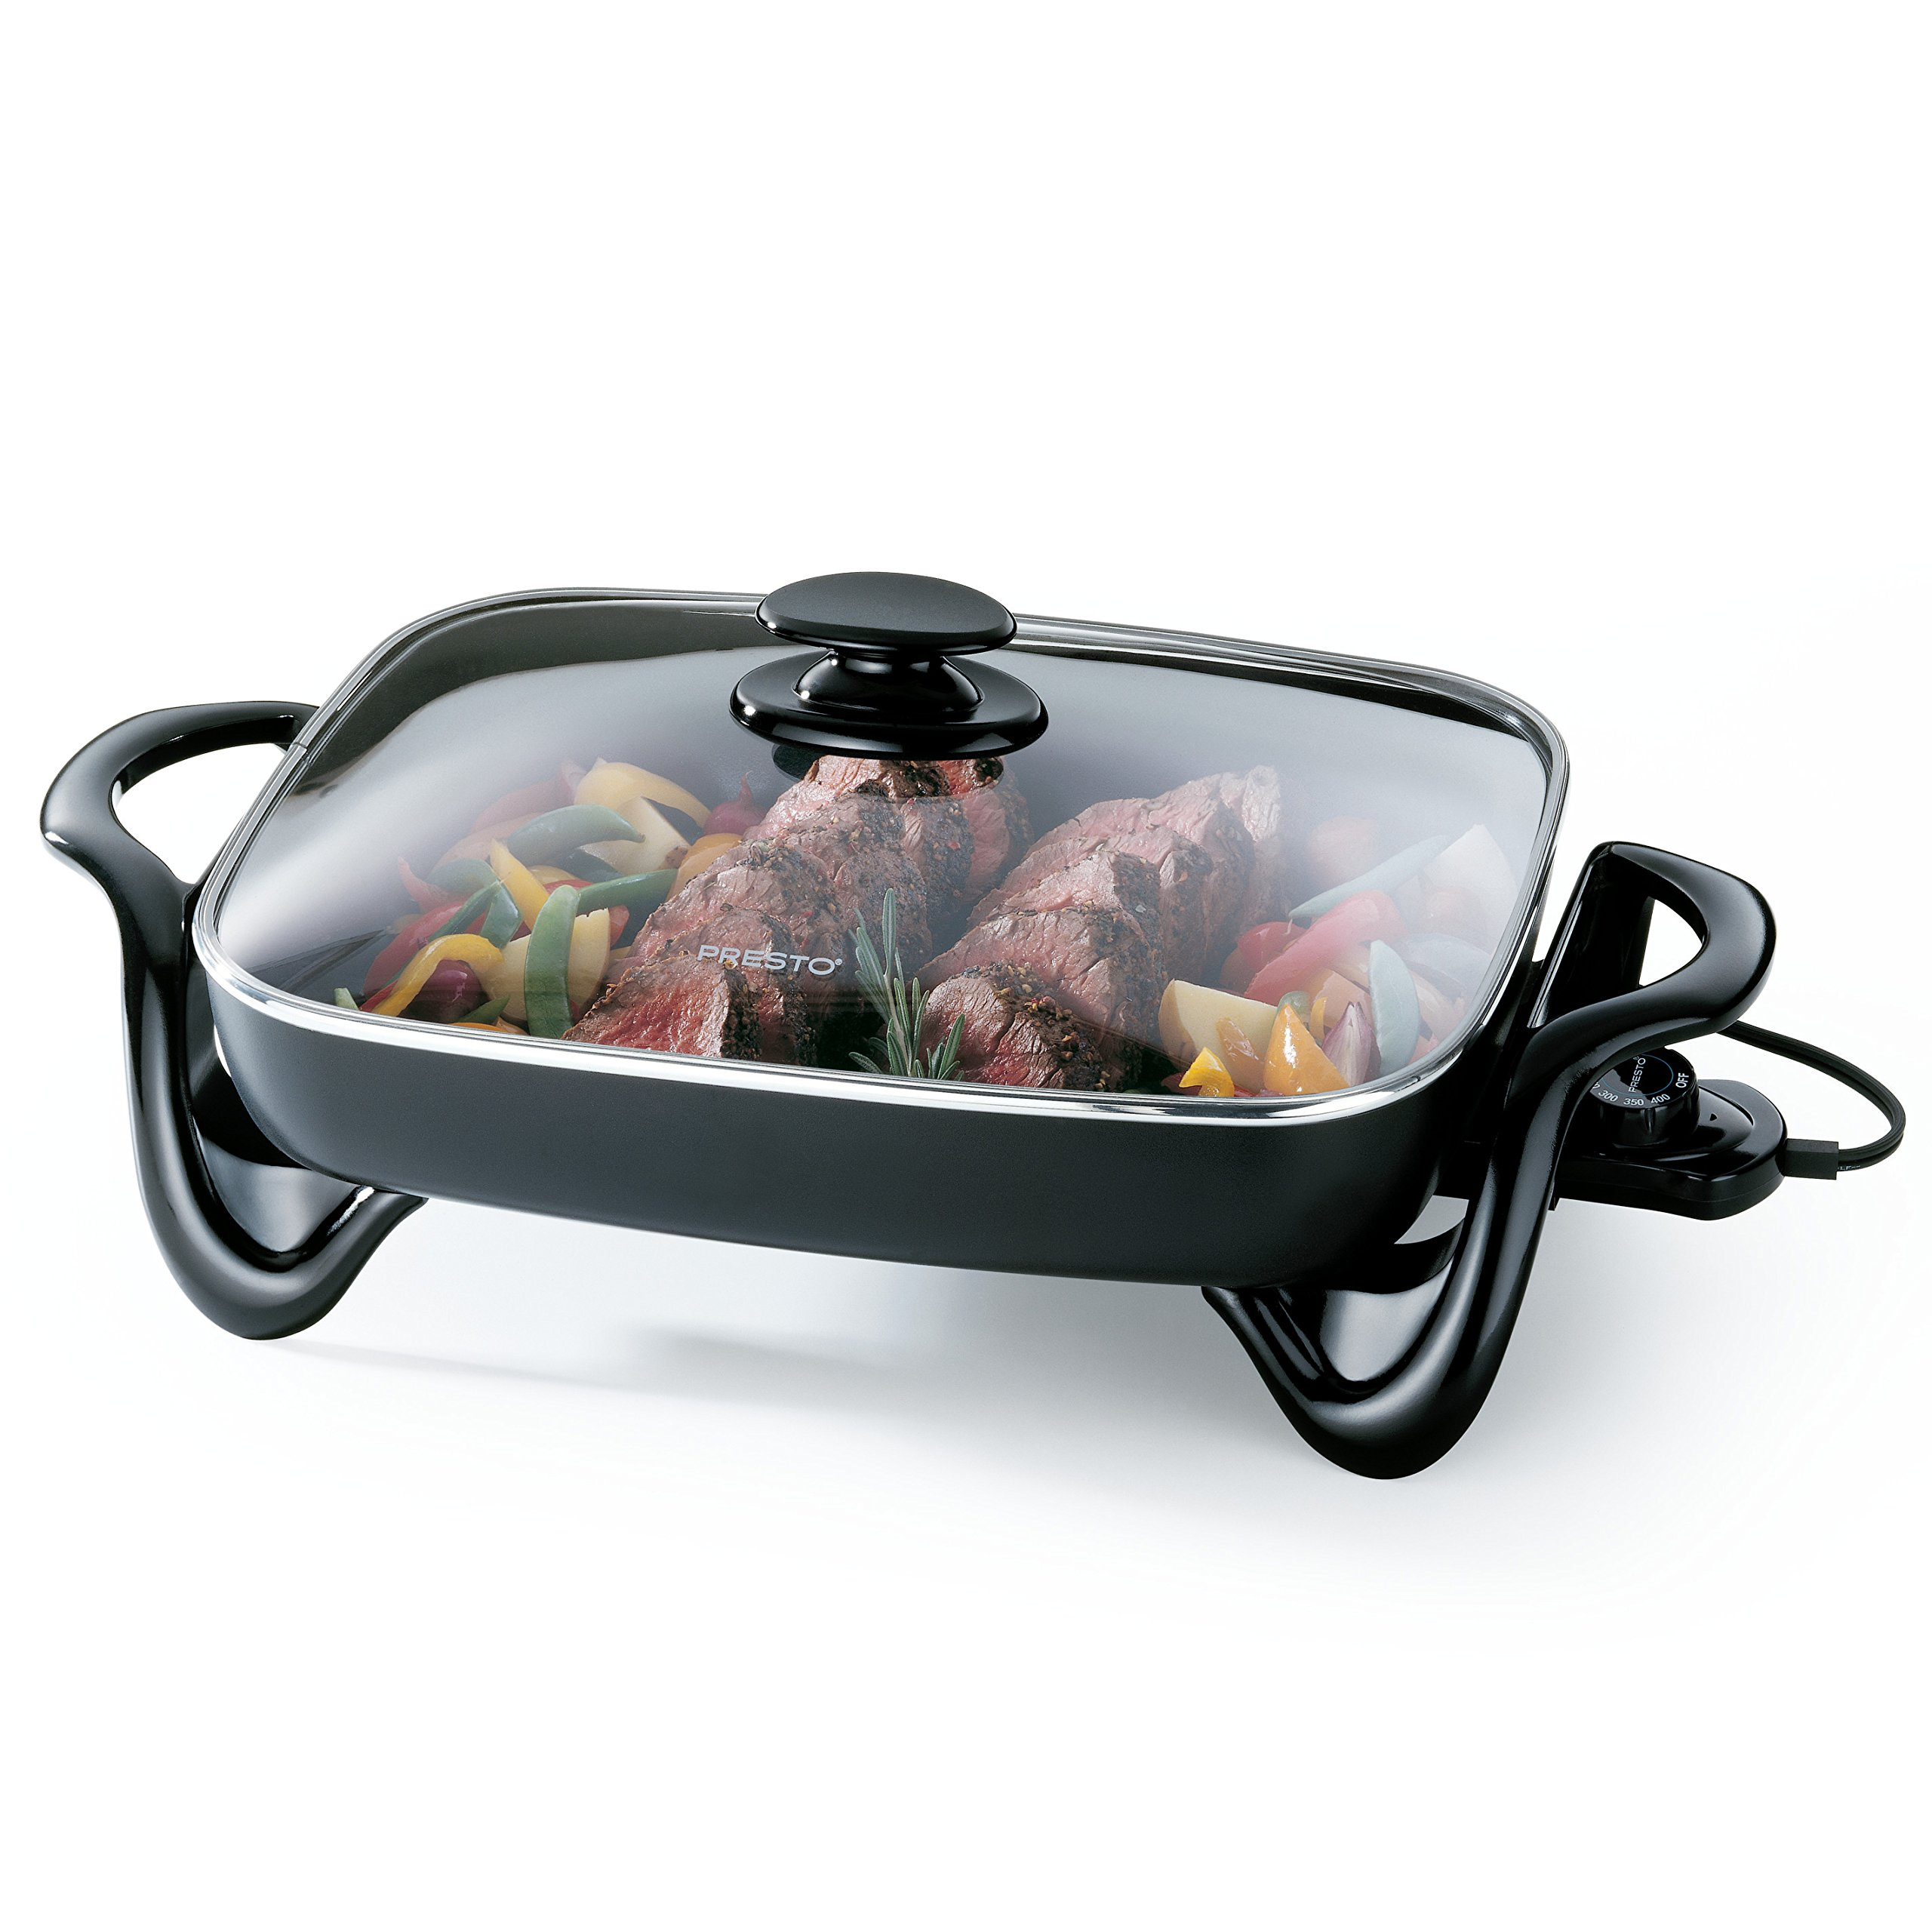 Presto 06852 16-Inch Electric Skillet with Glass Cover by Presto (Image #2)